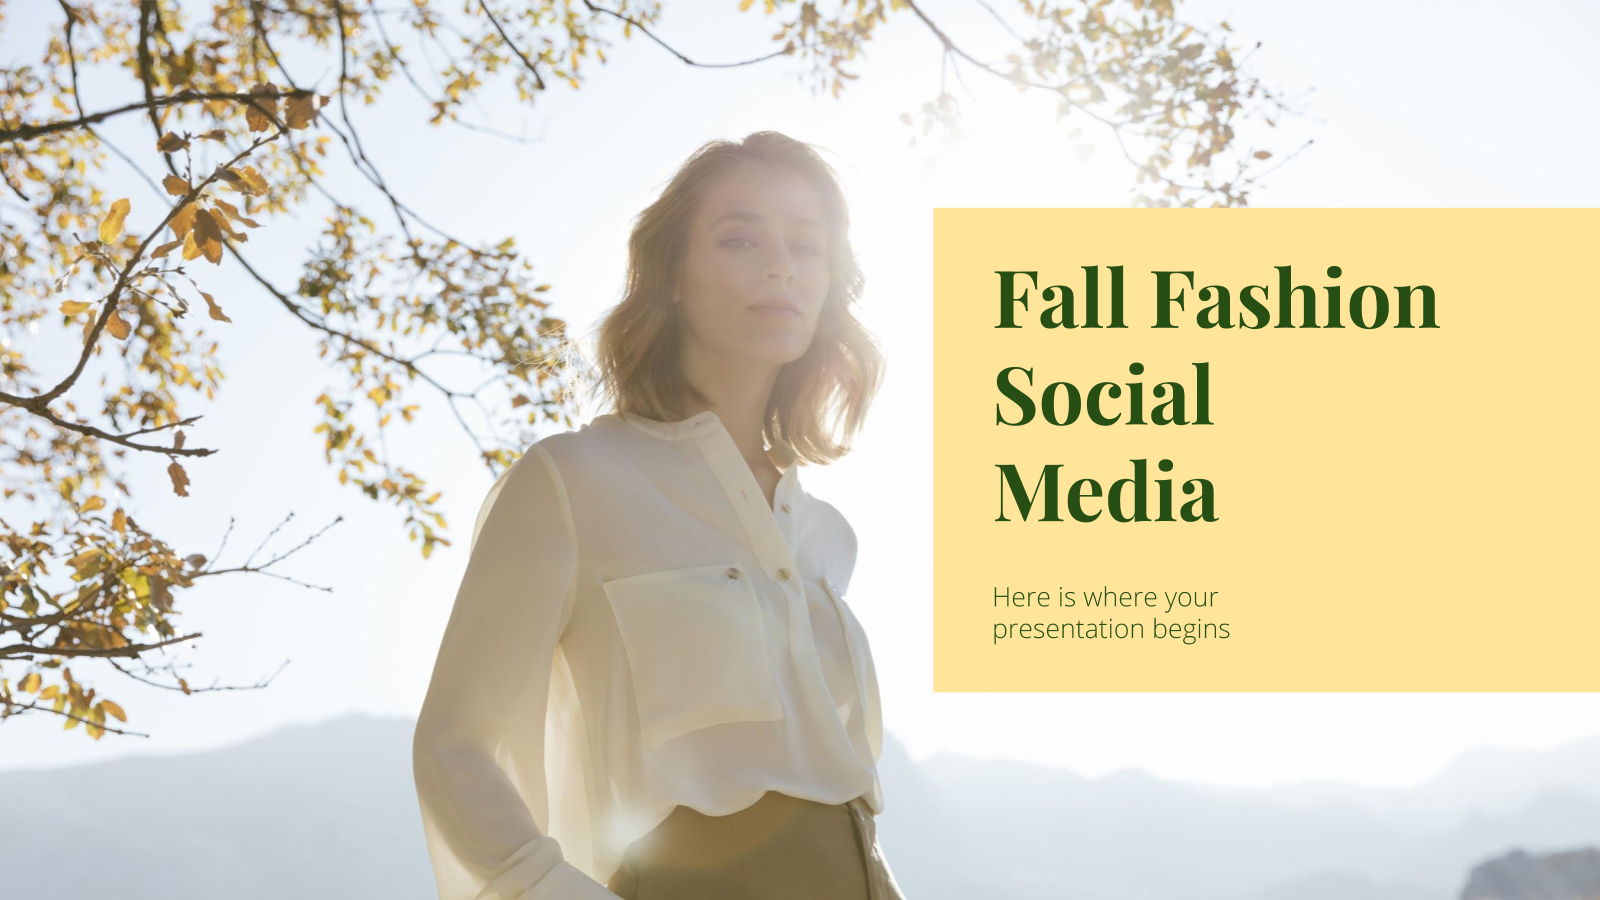 Fall Fashion Social Media presentation template